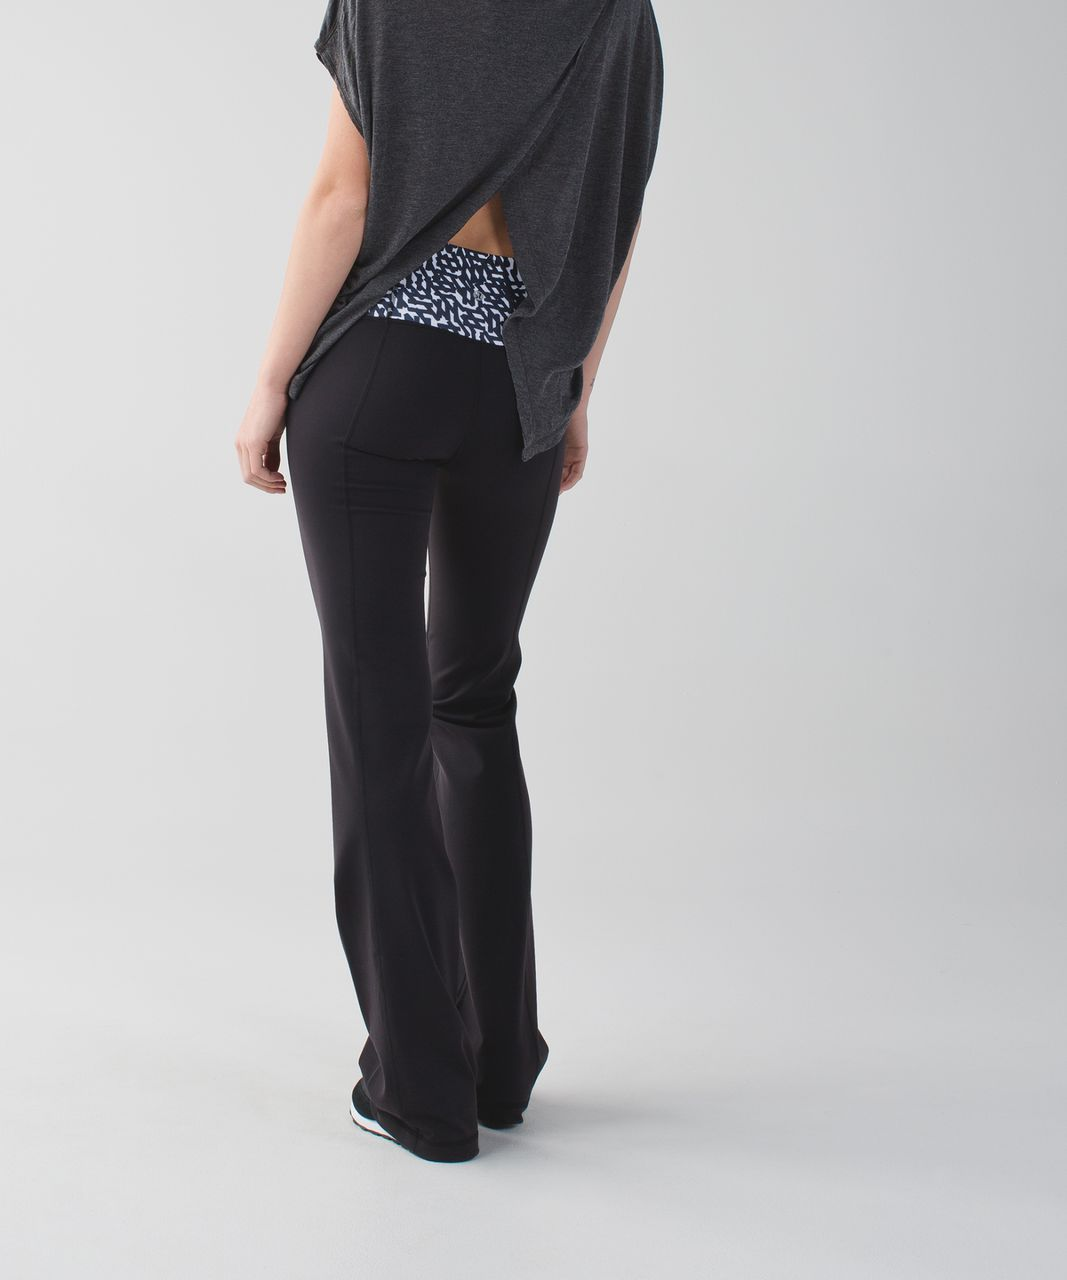 Lululemon Groove Pant II *Full-On Luon (Roll Down - Tall) - Black / Net Pop White Black